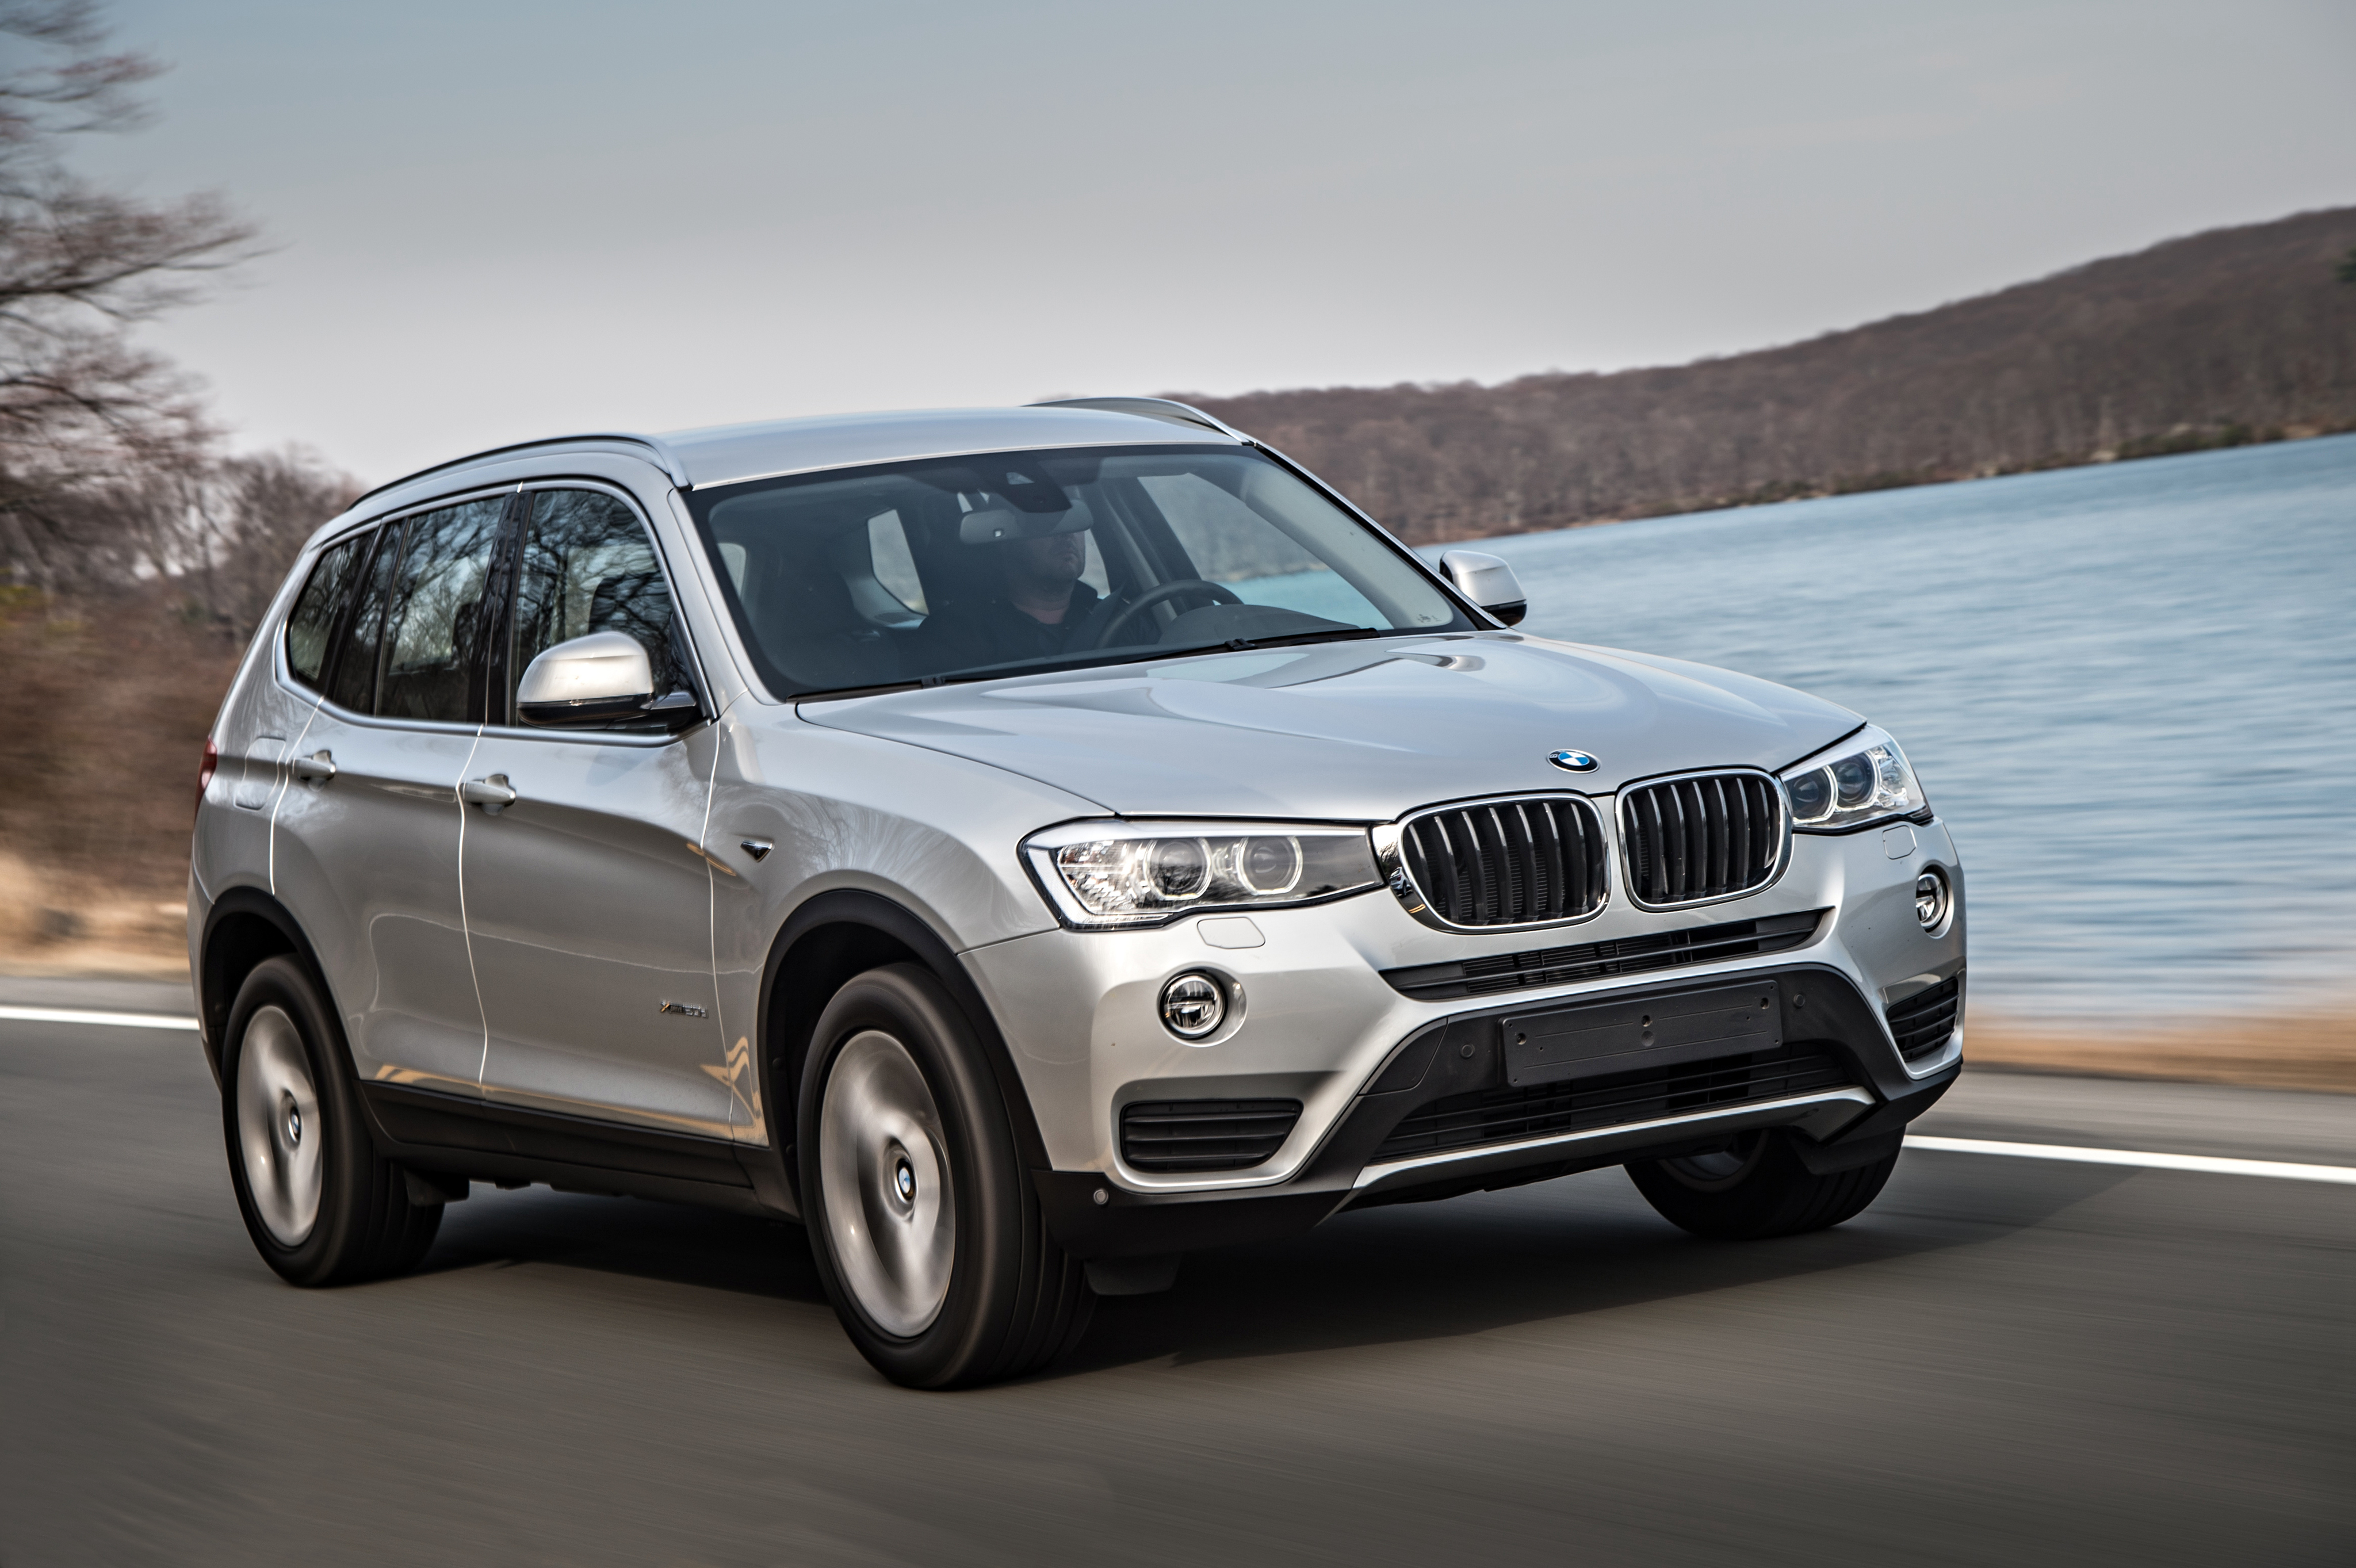 BMW X3 xDrive20d 2014 photo - 4